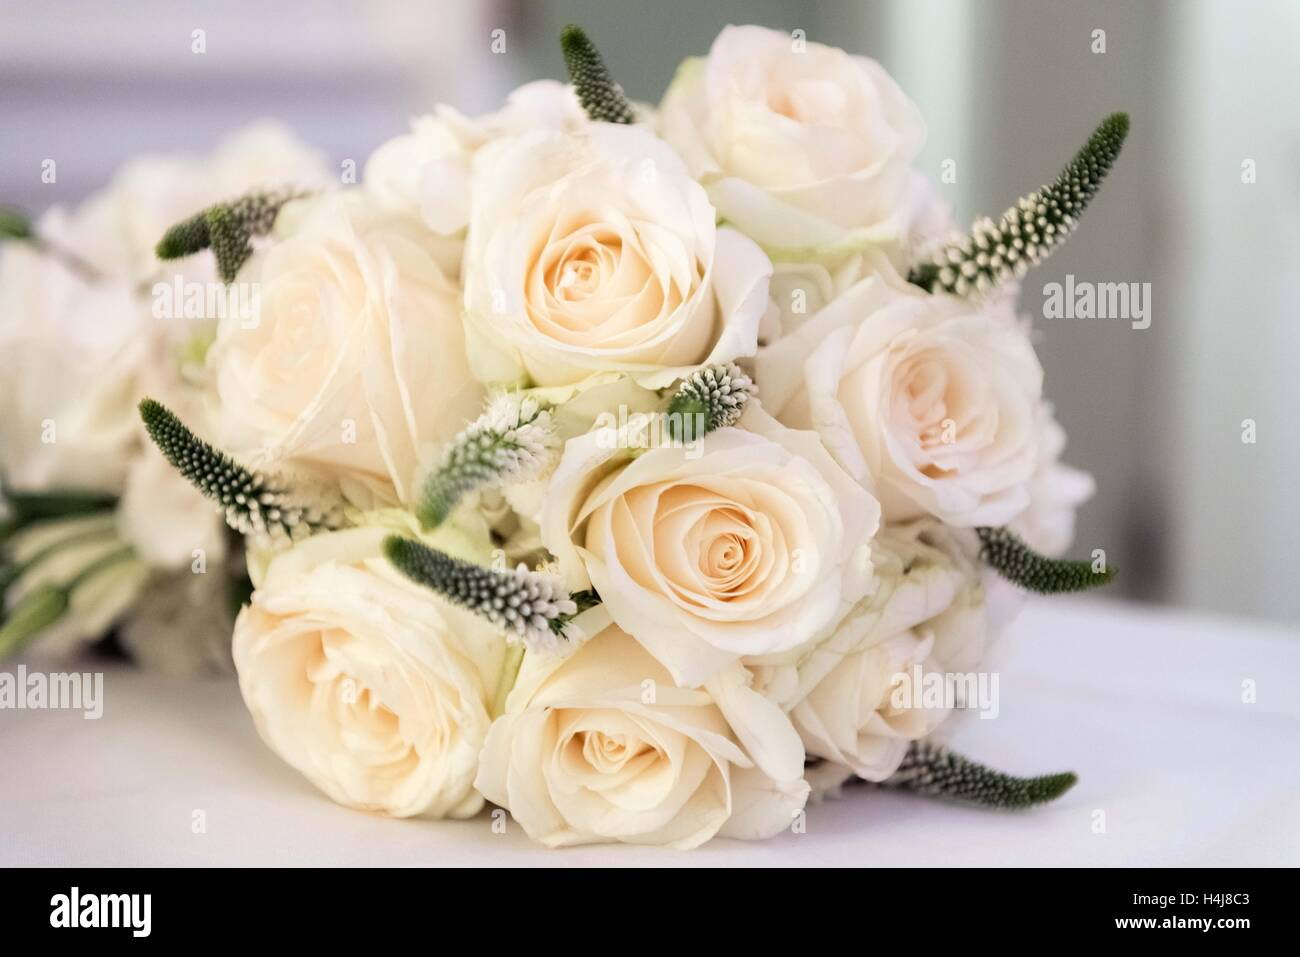 Wedding flower bouquet of white roses - Stock Image